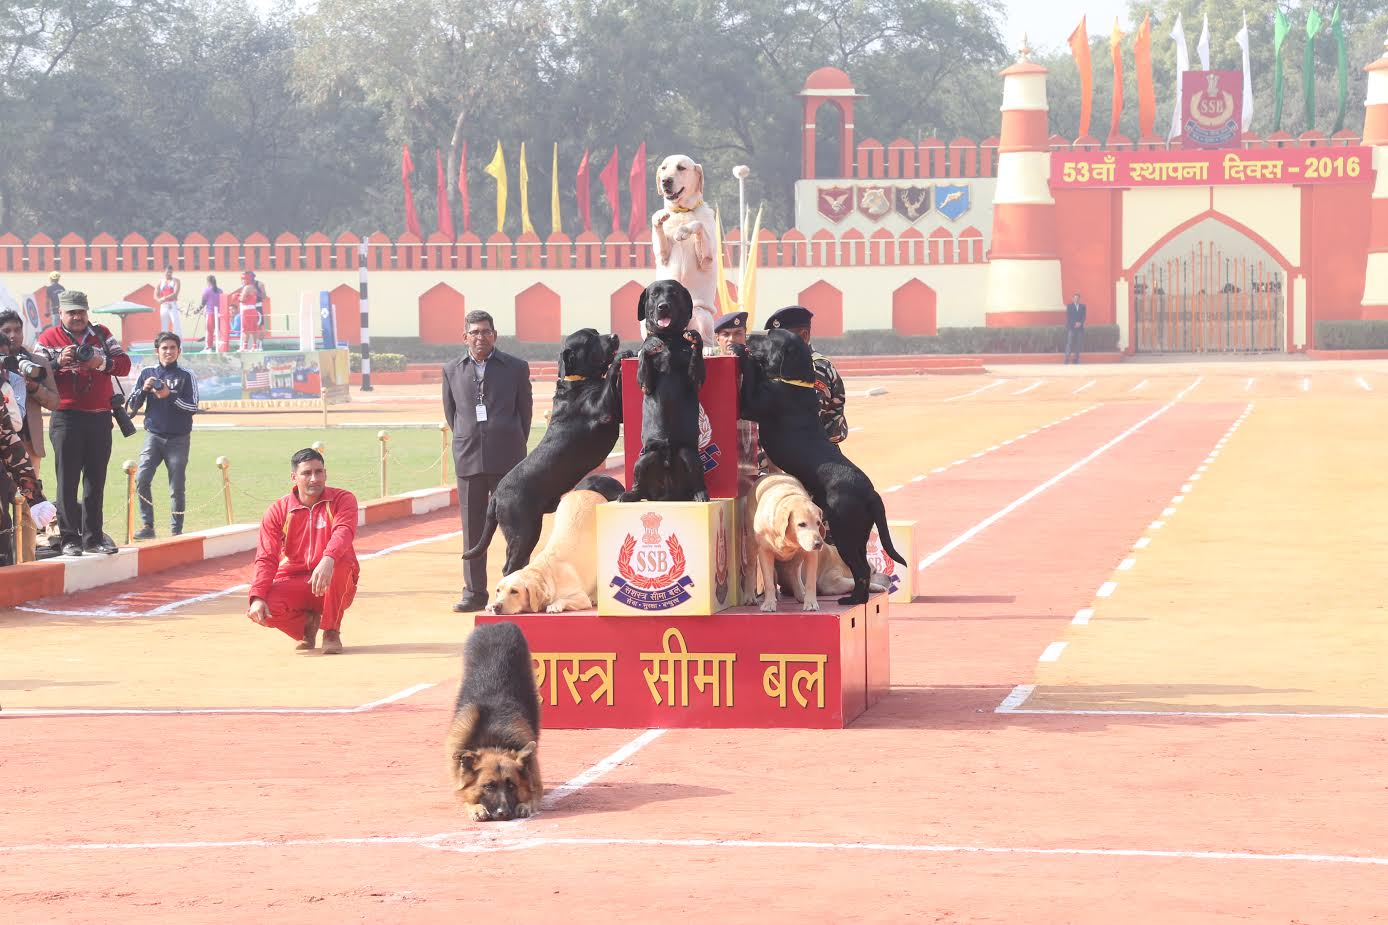 ssb-jawans-performing-various-acts-ssb-foundation-day-5